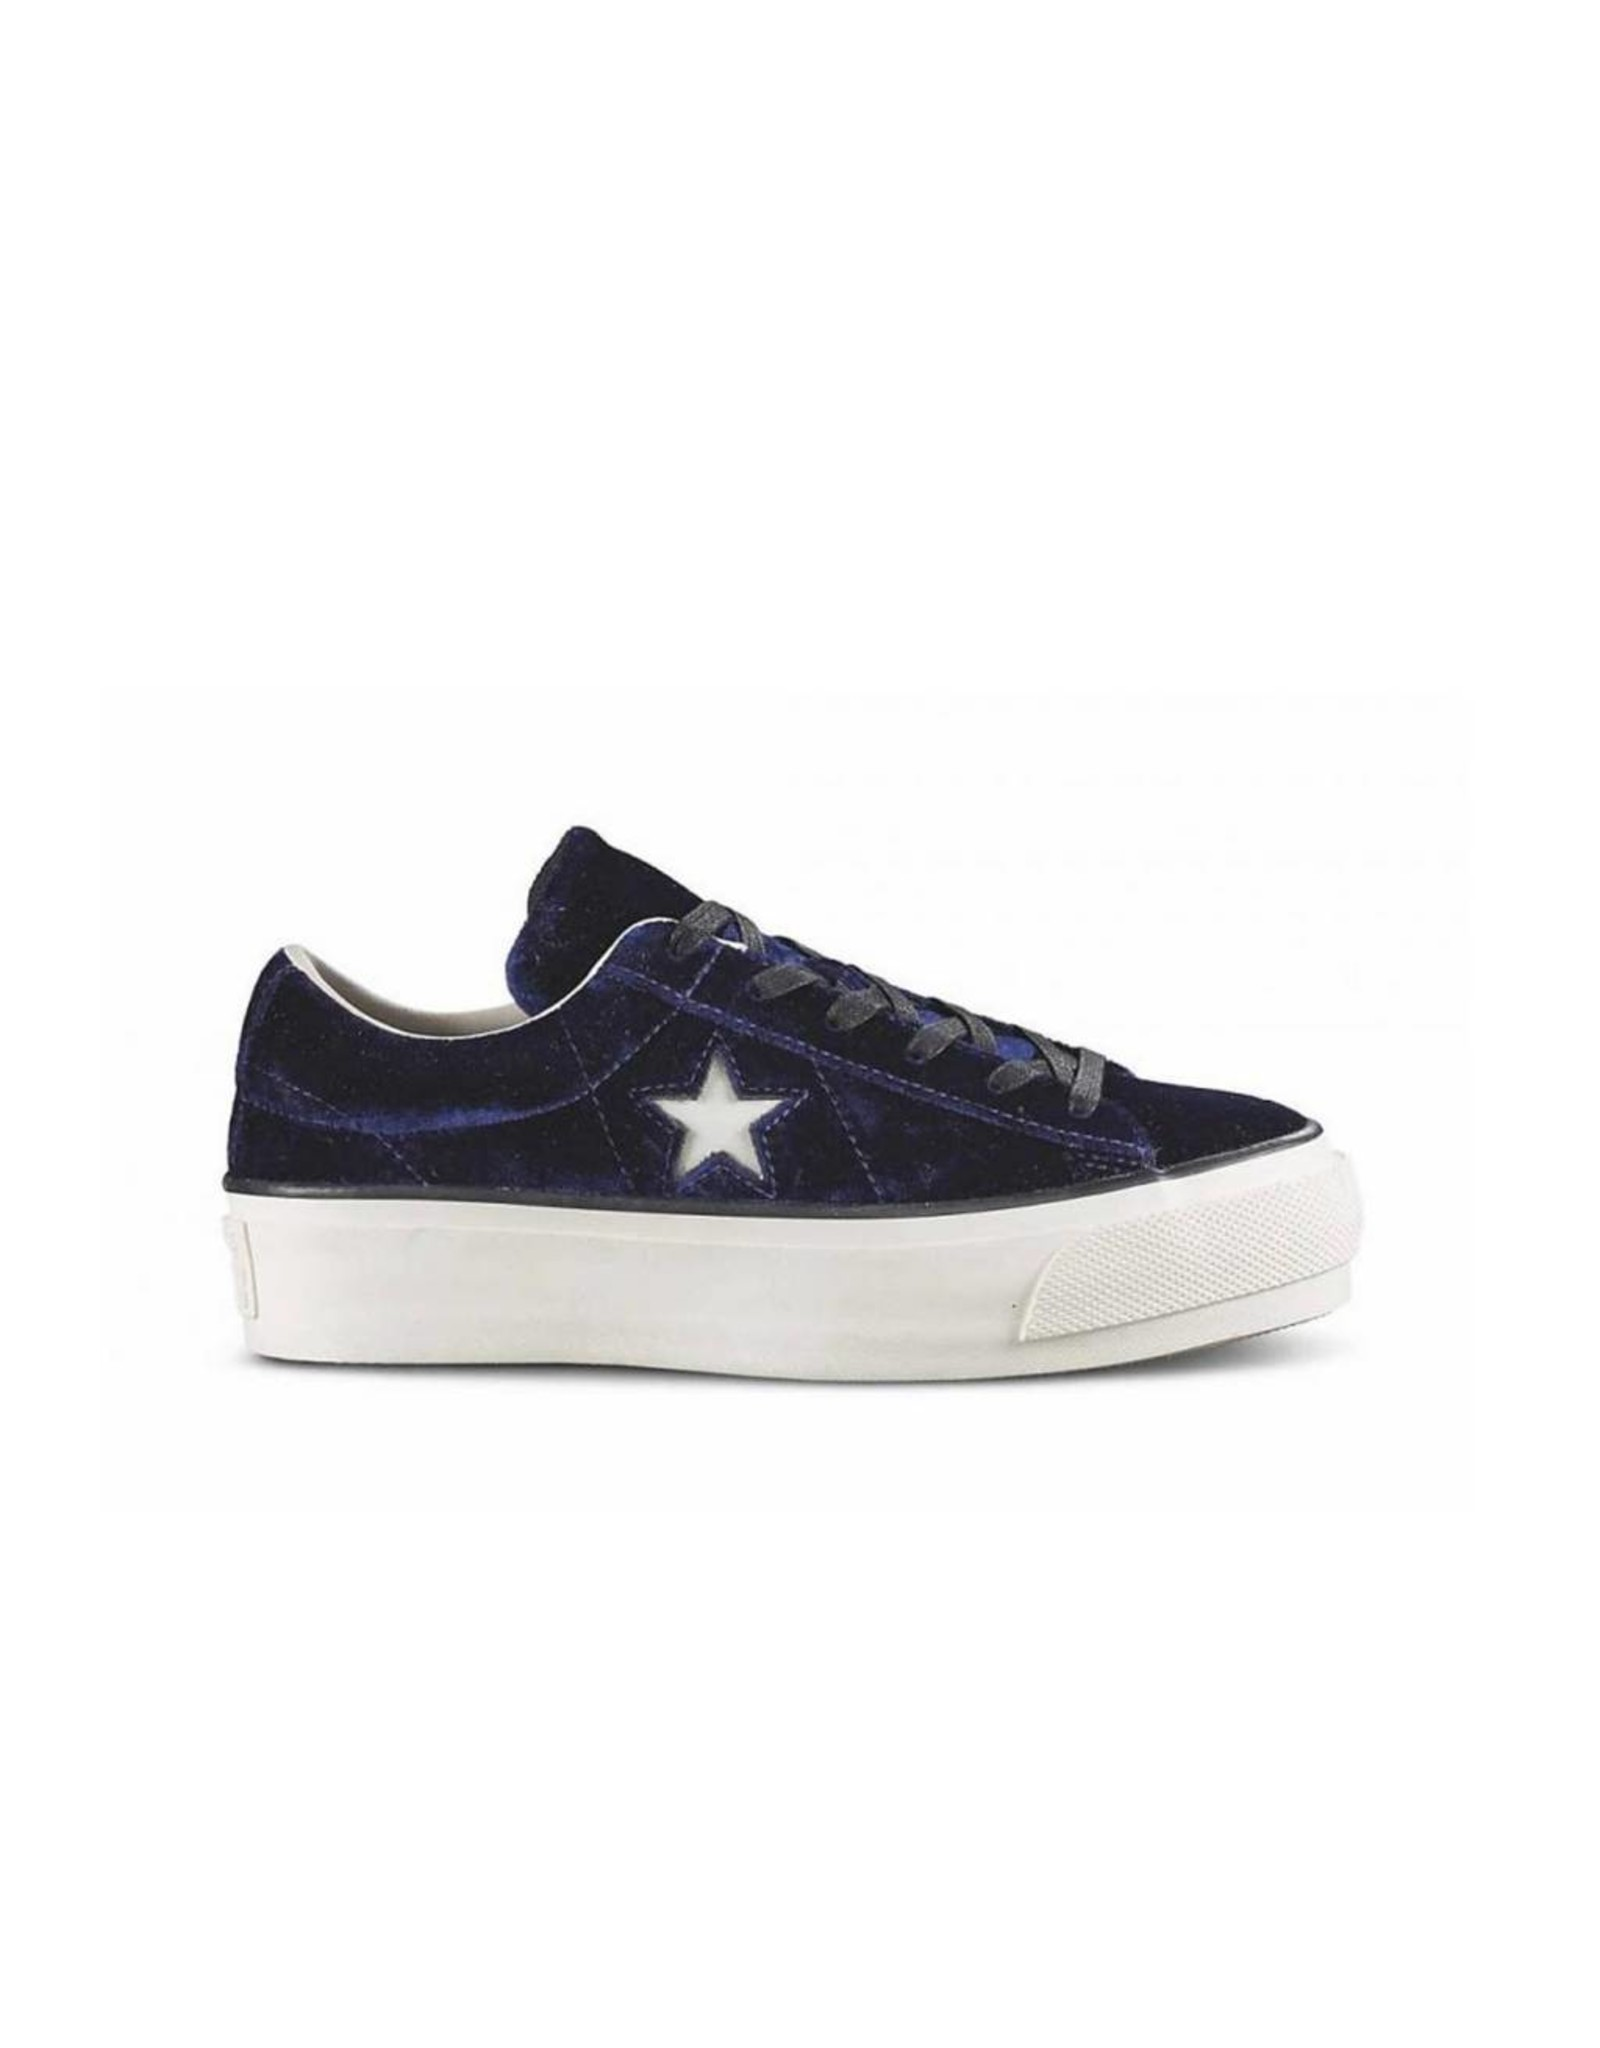 CONVERSE ONE STAR PLATFORM OX ECLIPSE BLUE/EGRET C787PFBL-558952C